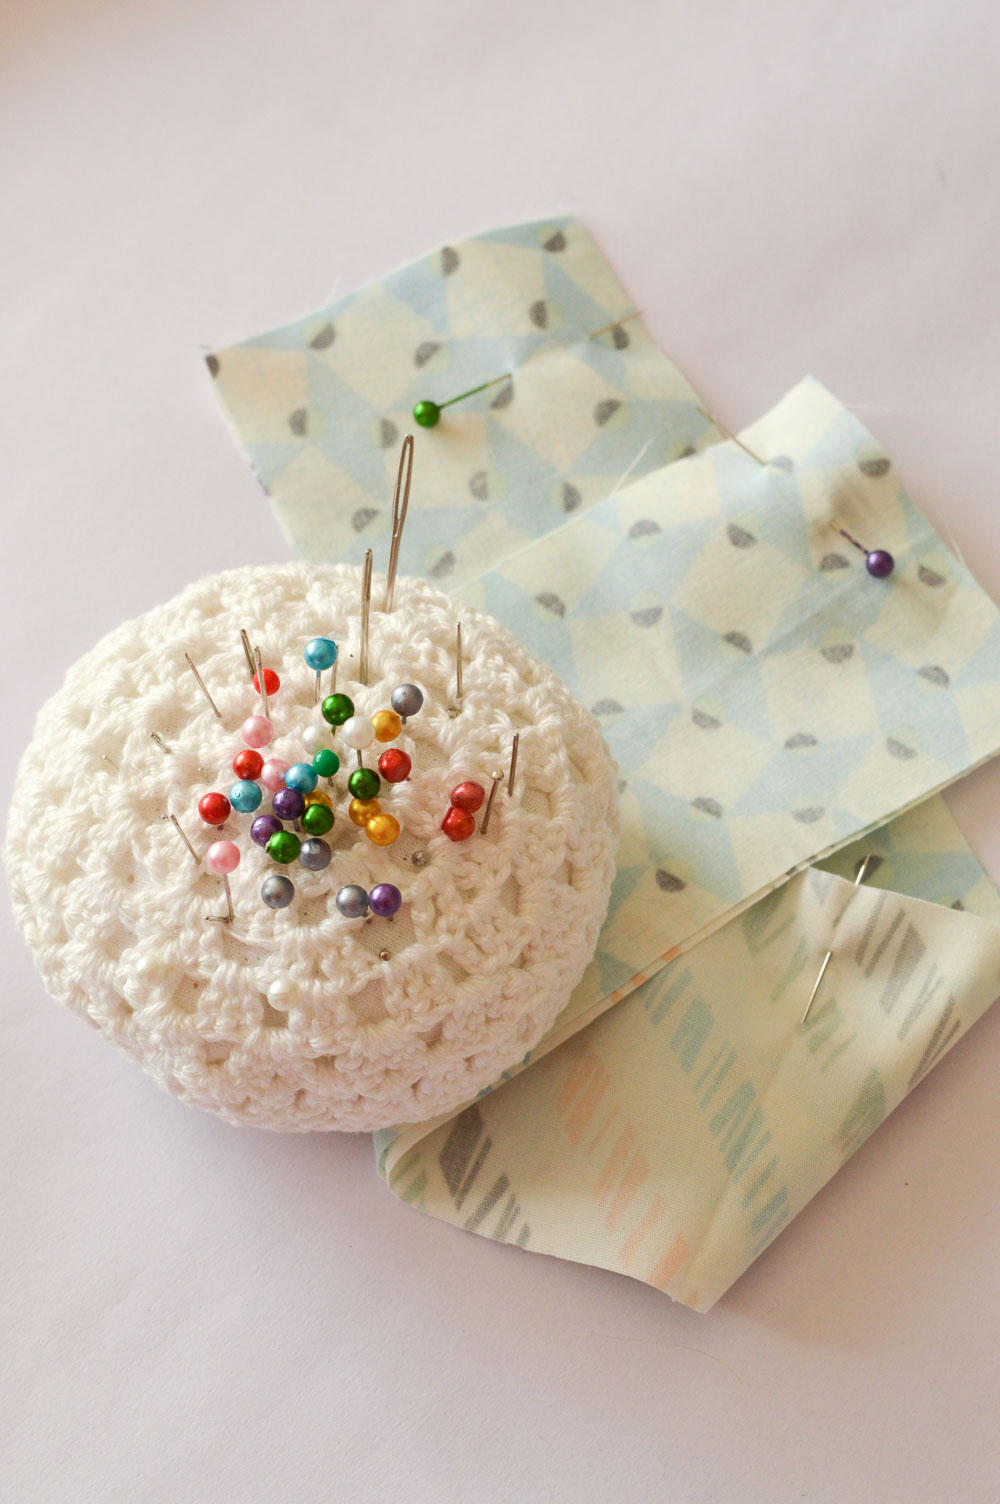 craftclubbox subscription review Crafting Fingers-7